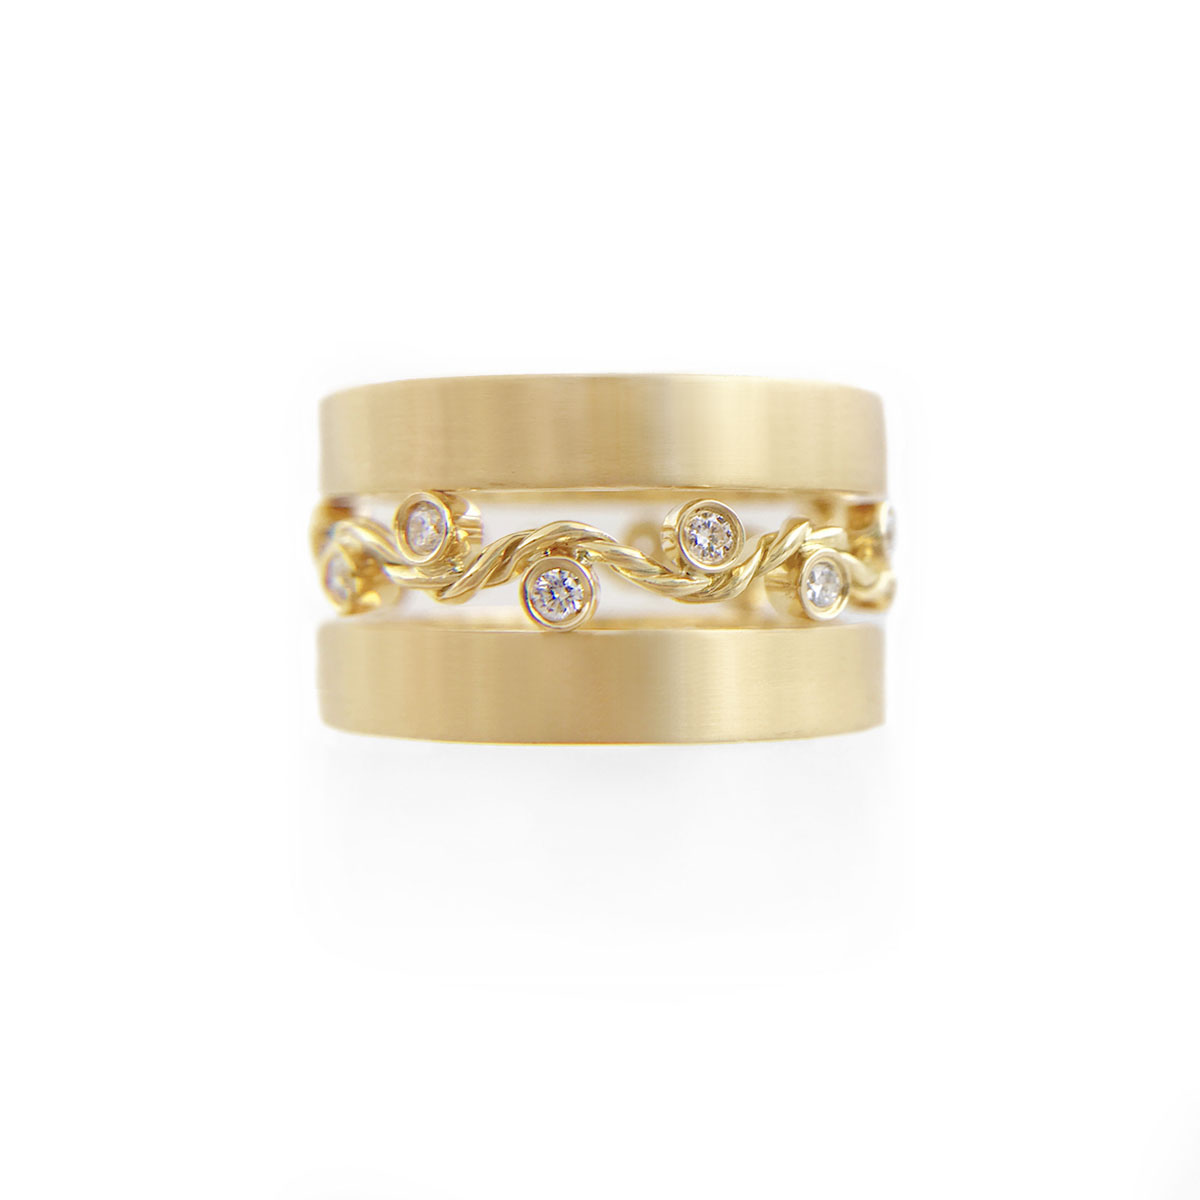 1.55-12mm-Open-Lace-Wavy-Twist-Satin-Square-Band-Diamond-Ring-Stacking-14k-18k-JeweLyrie_3485-1